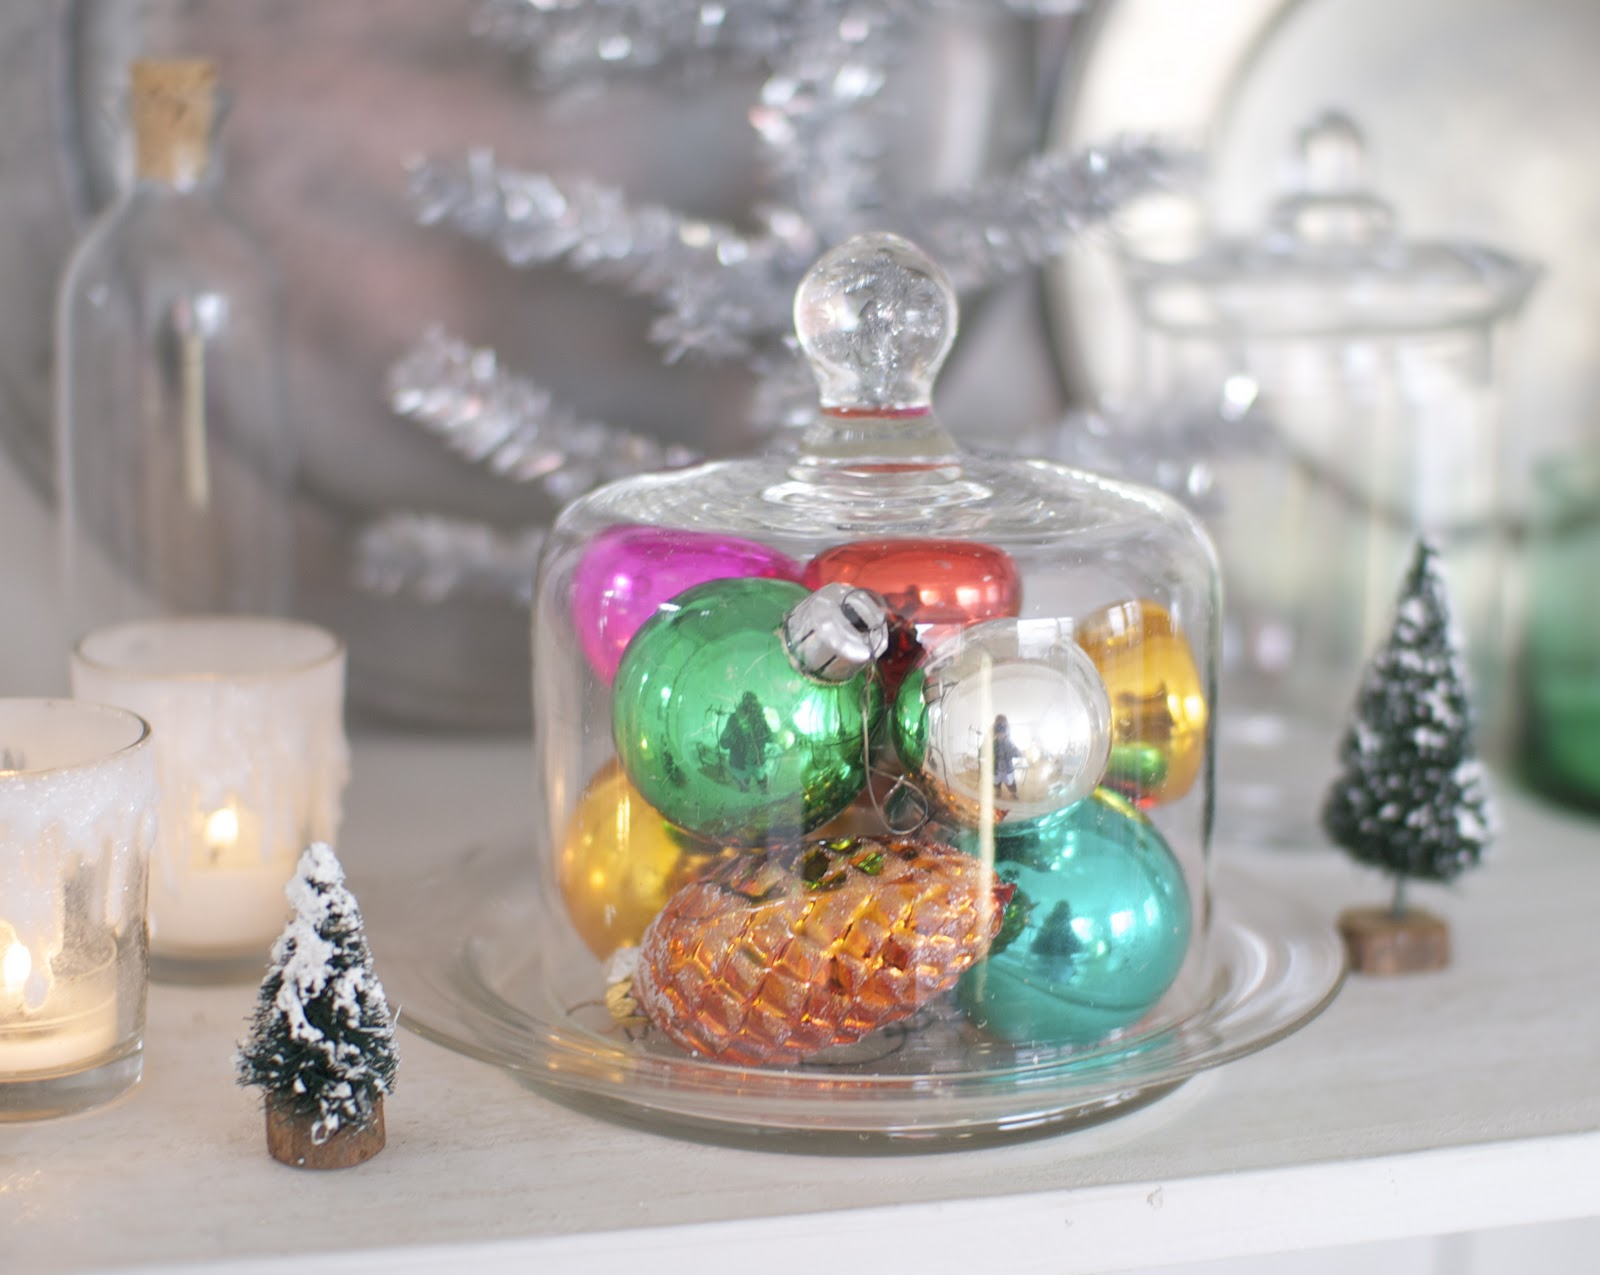 Ruki duki ideas for decorating with your vintage glass